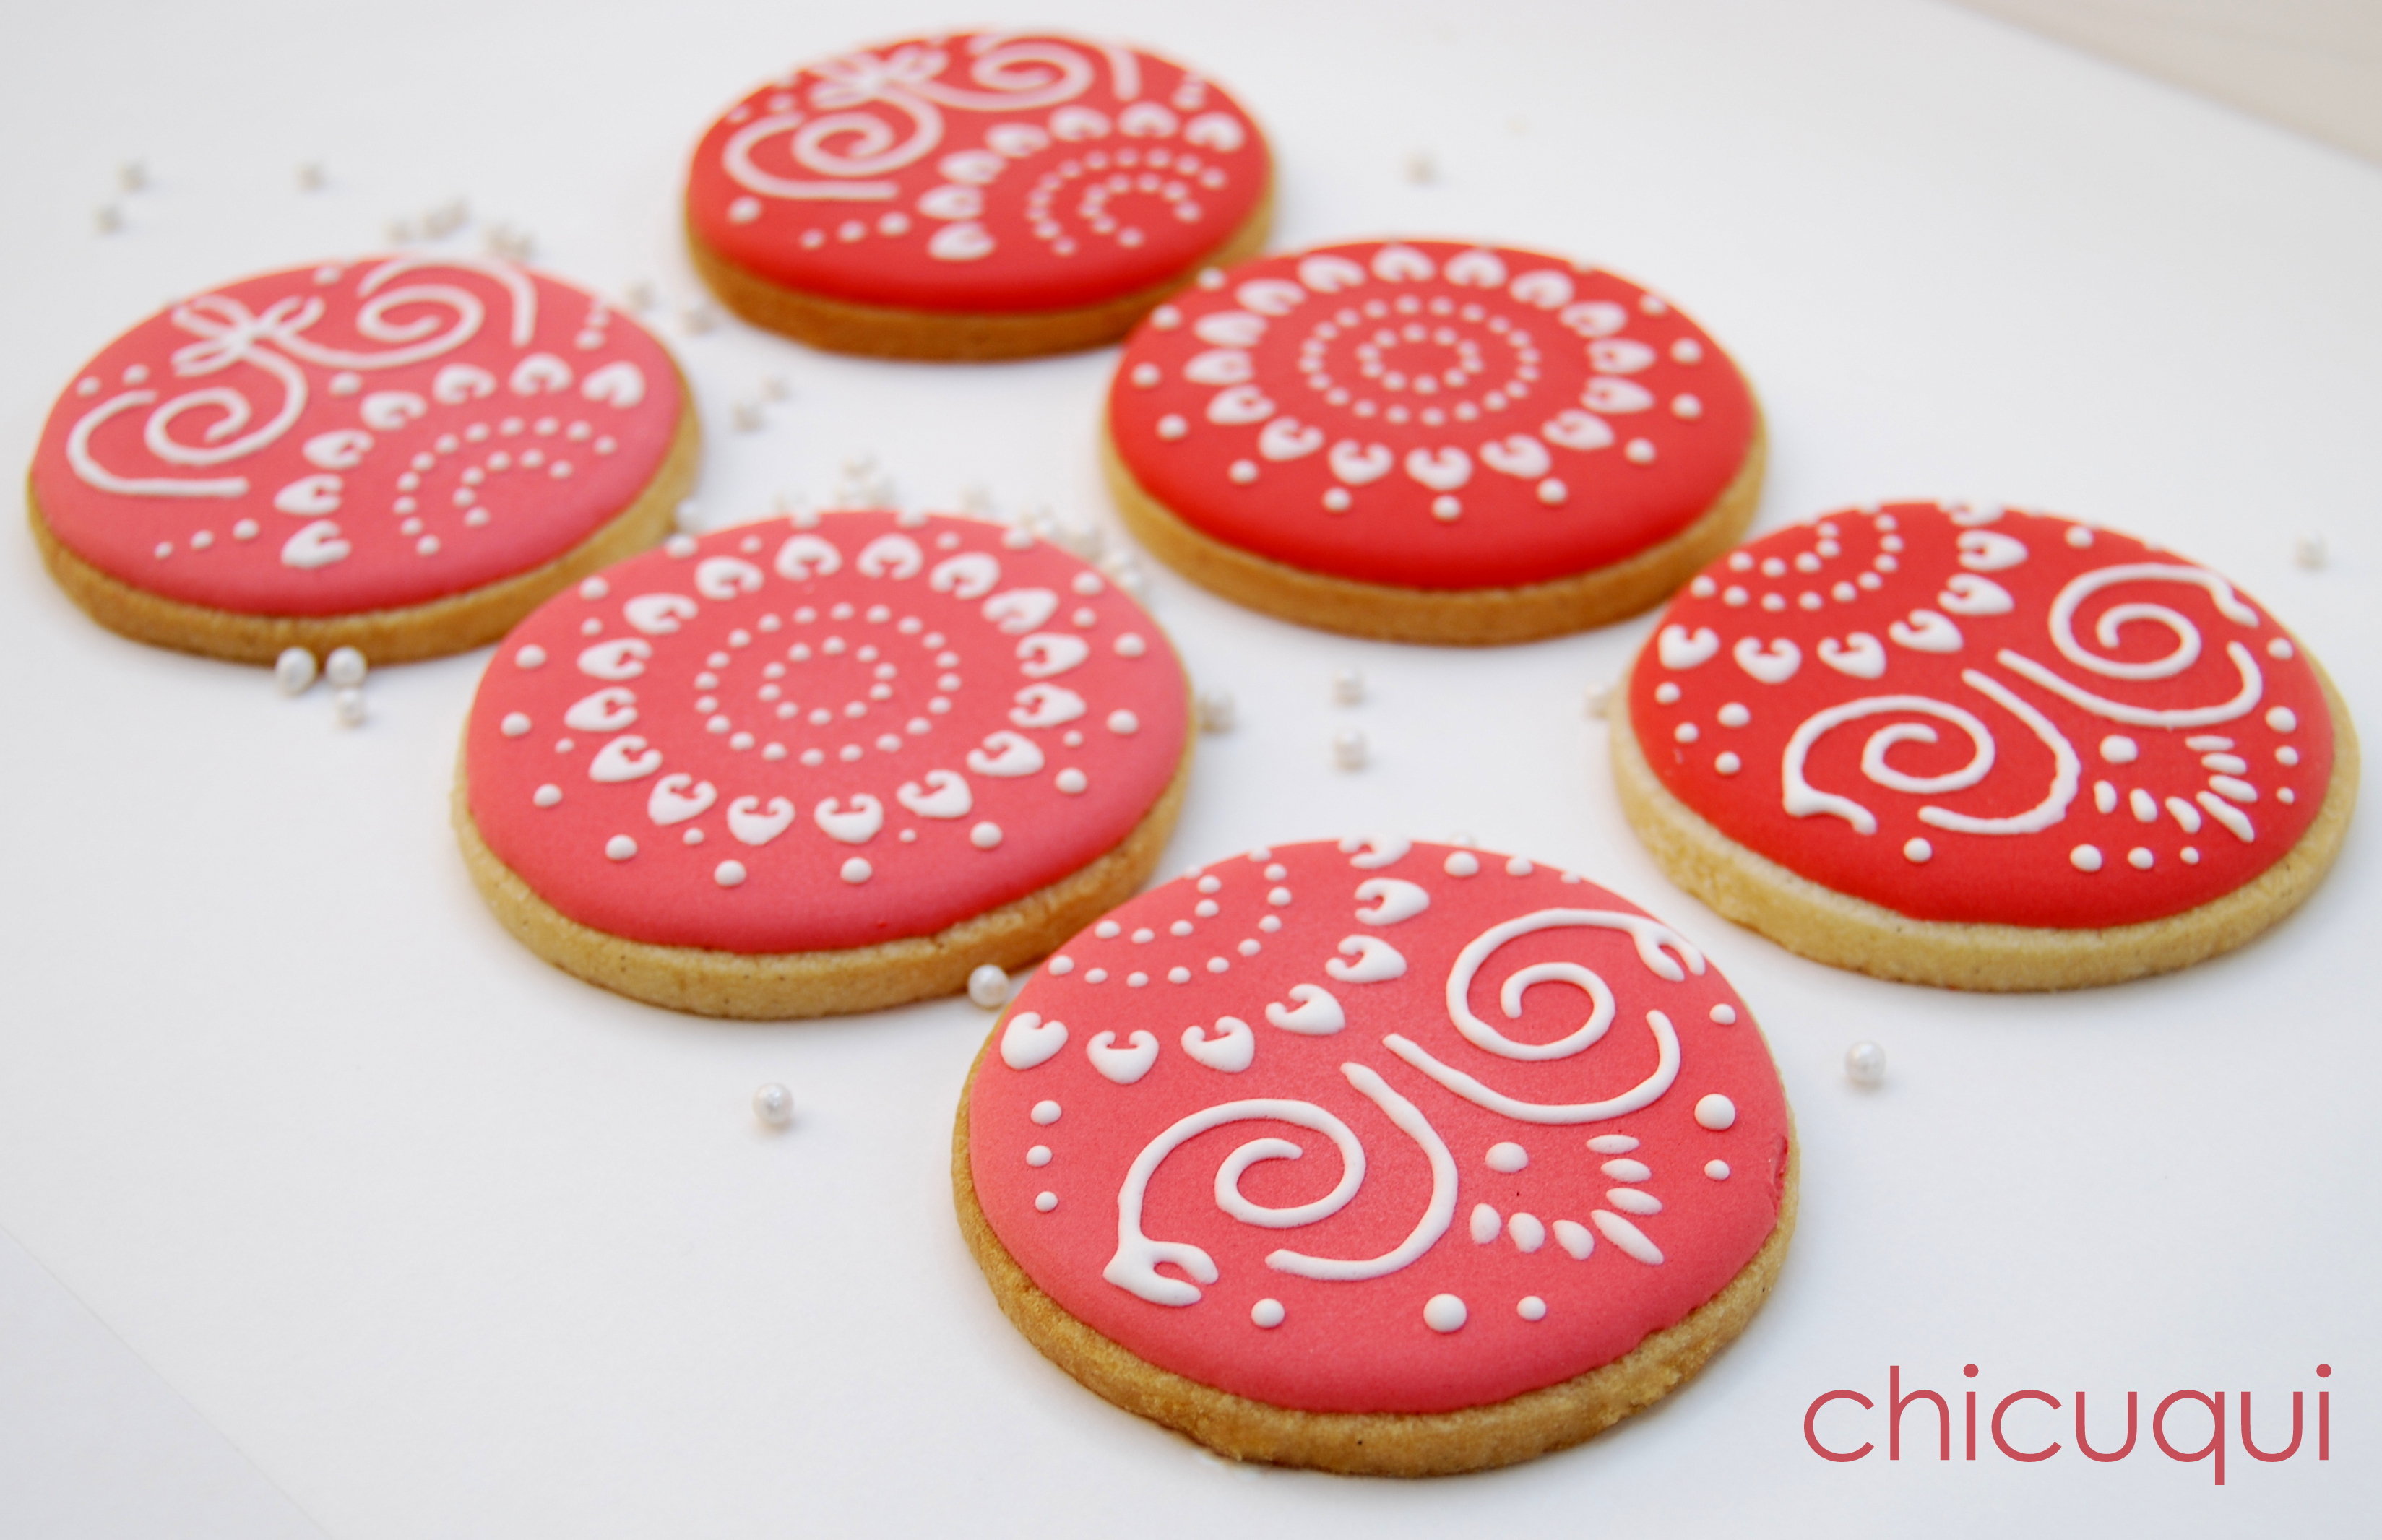 Decorar Con Glasa Real Galletas Decoradas Con Stencils Para Tartas Chicuqui